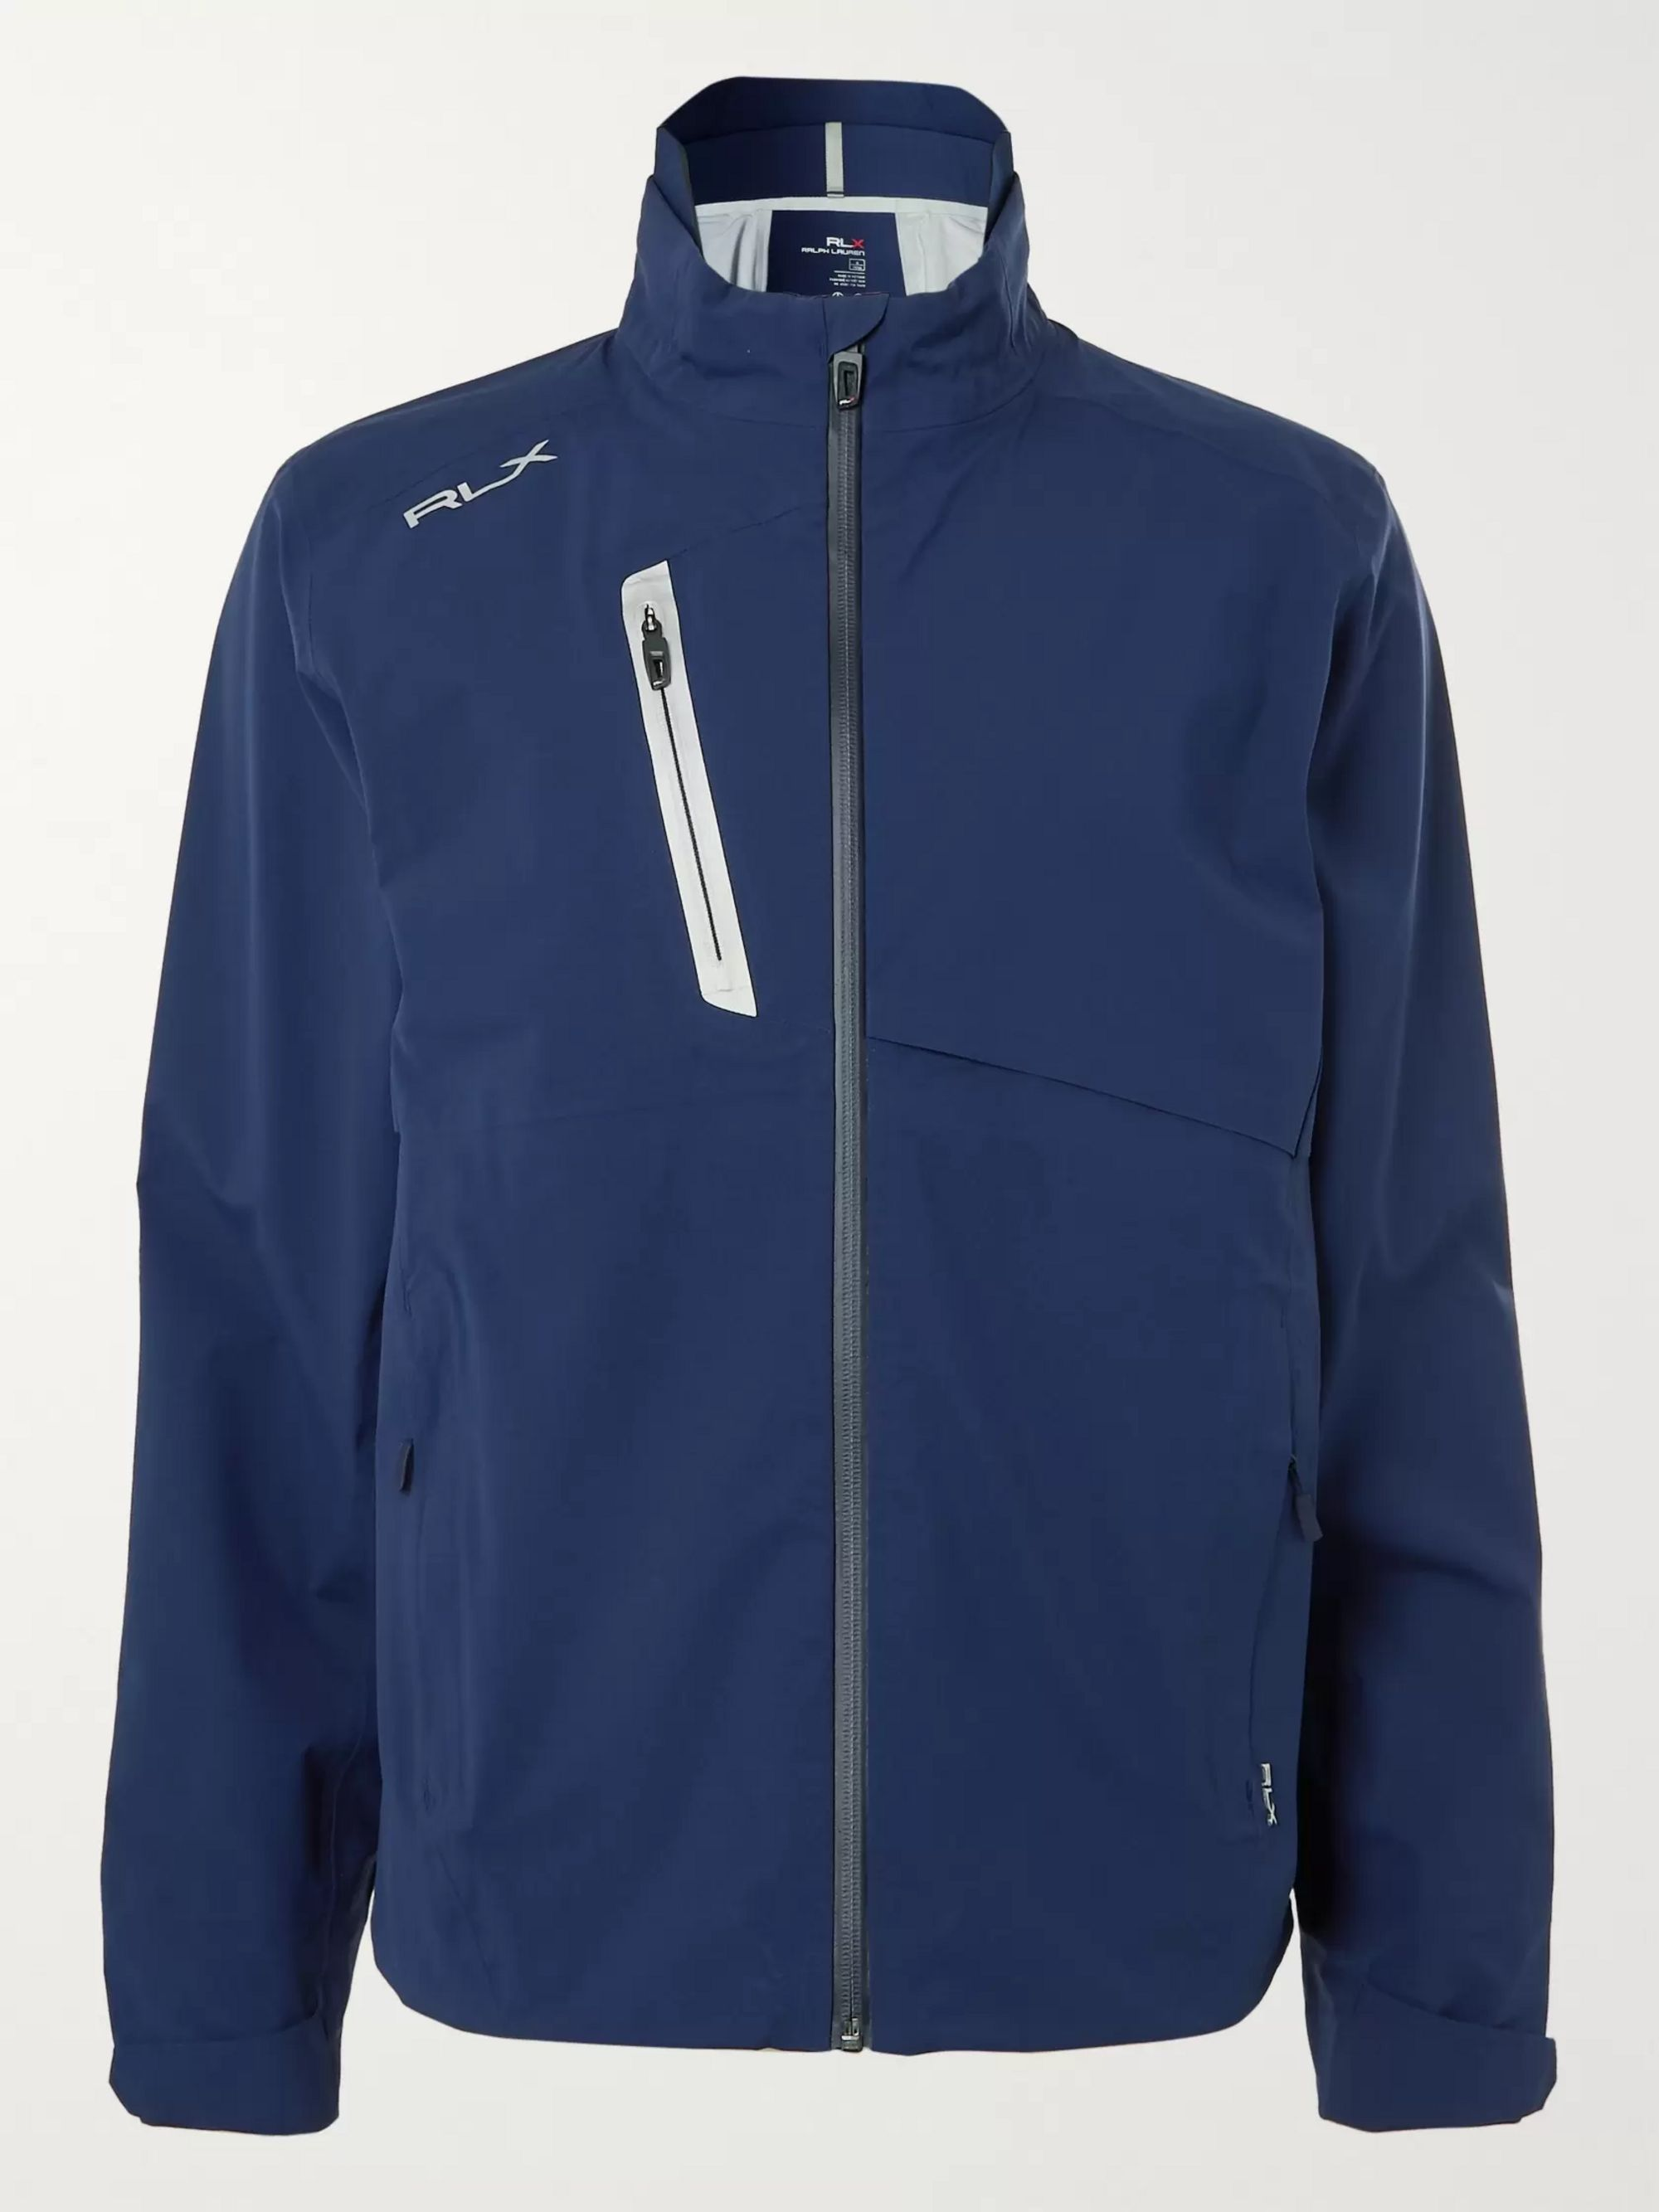 RLX Ralph Lauren Waterproof Nylon Jacket